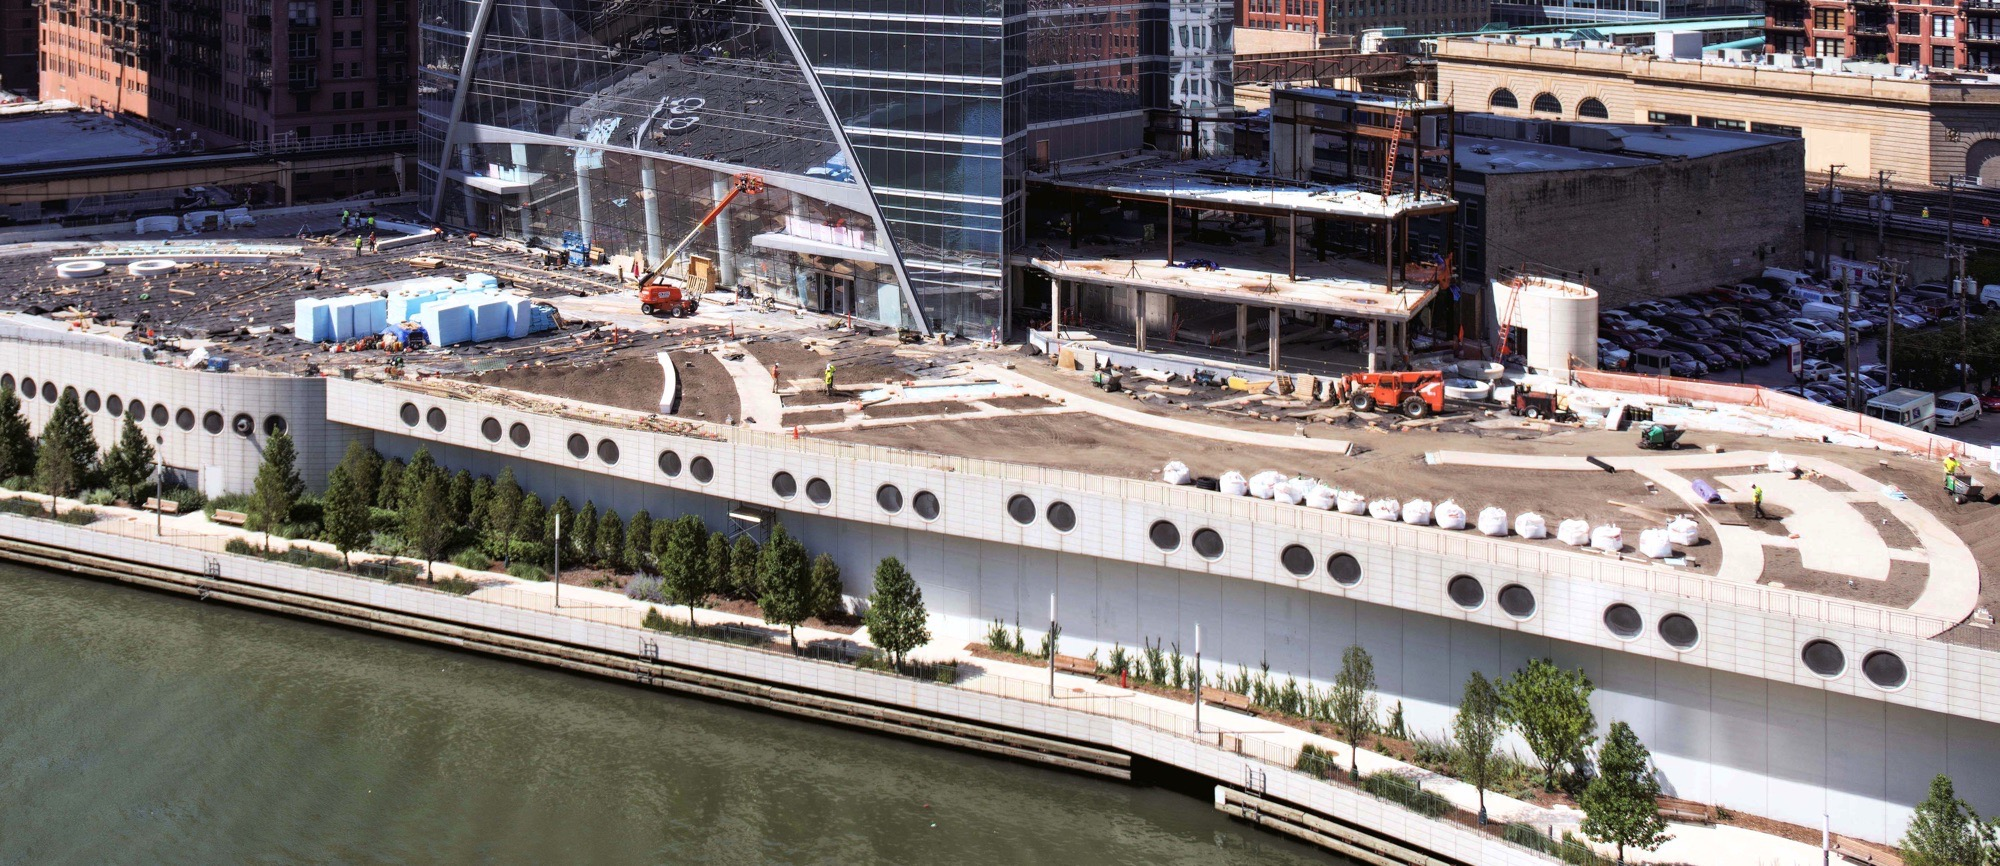 River Point under construction (Courtesy of Joe Zekas/YoChicago!)